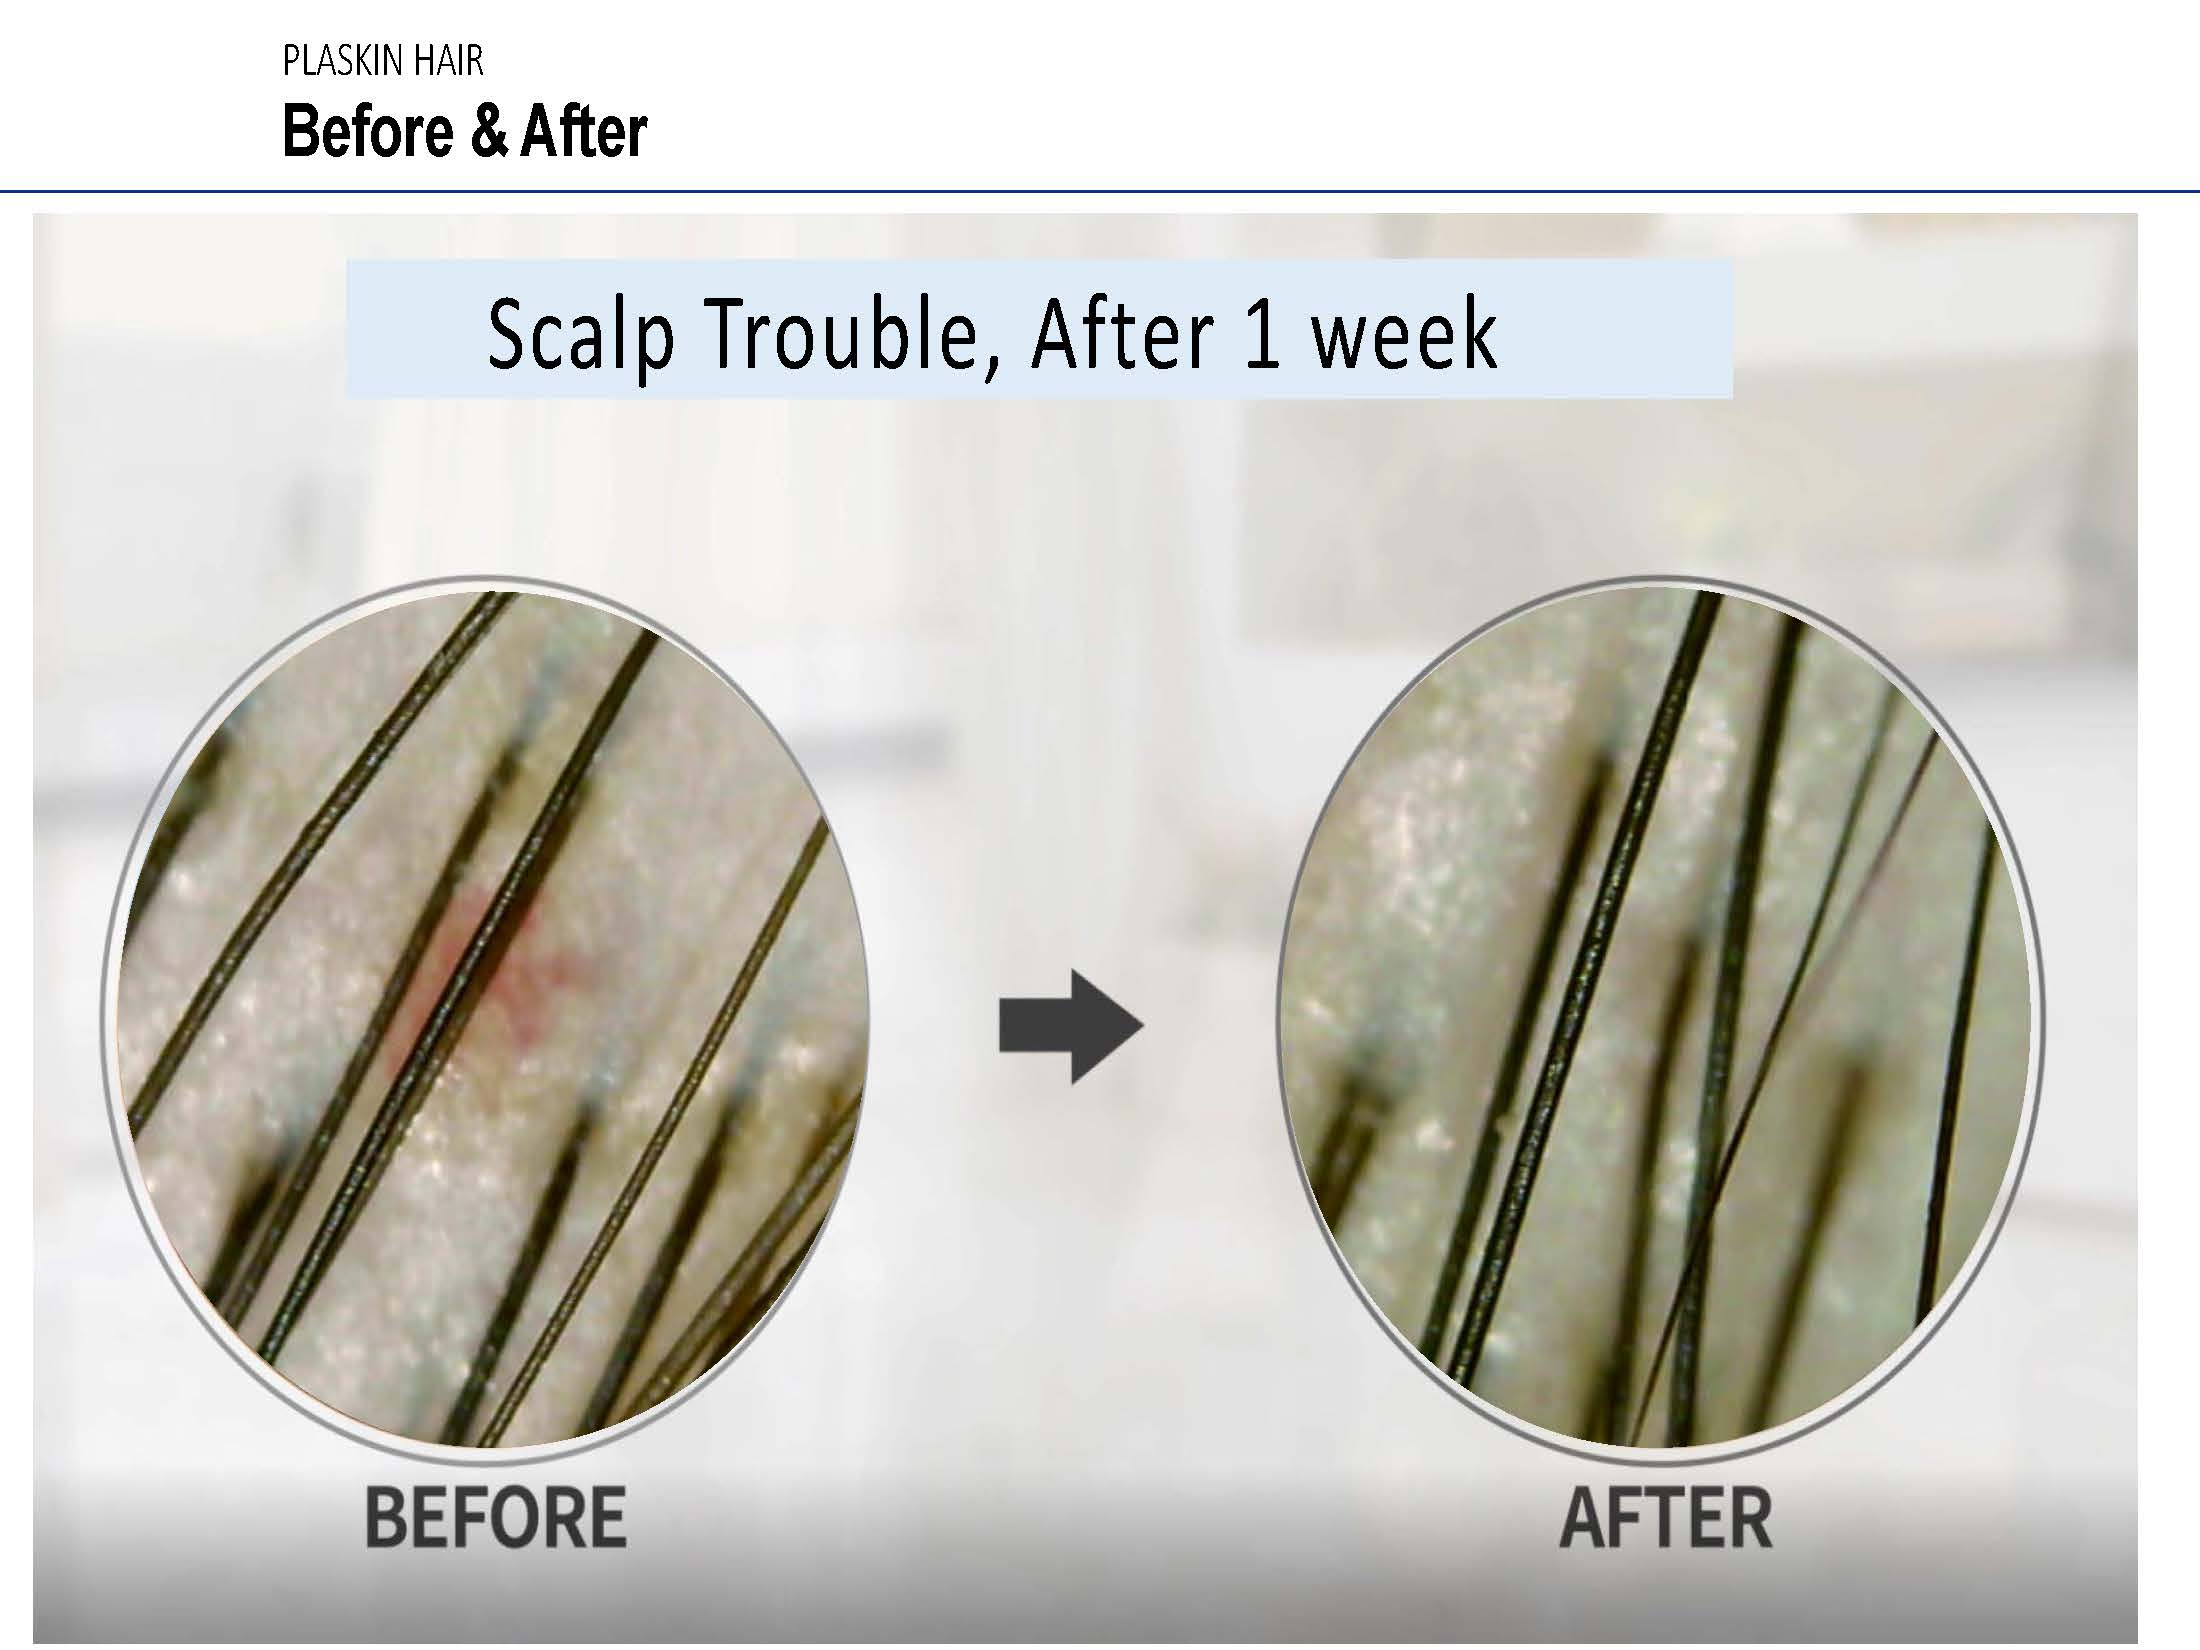 scalp trouble examples__Page_09.jpg